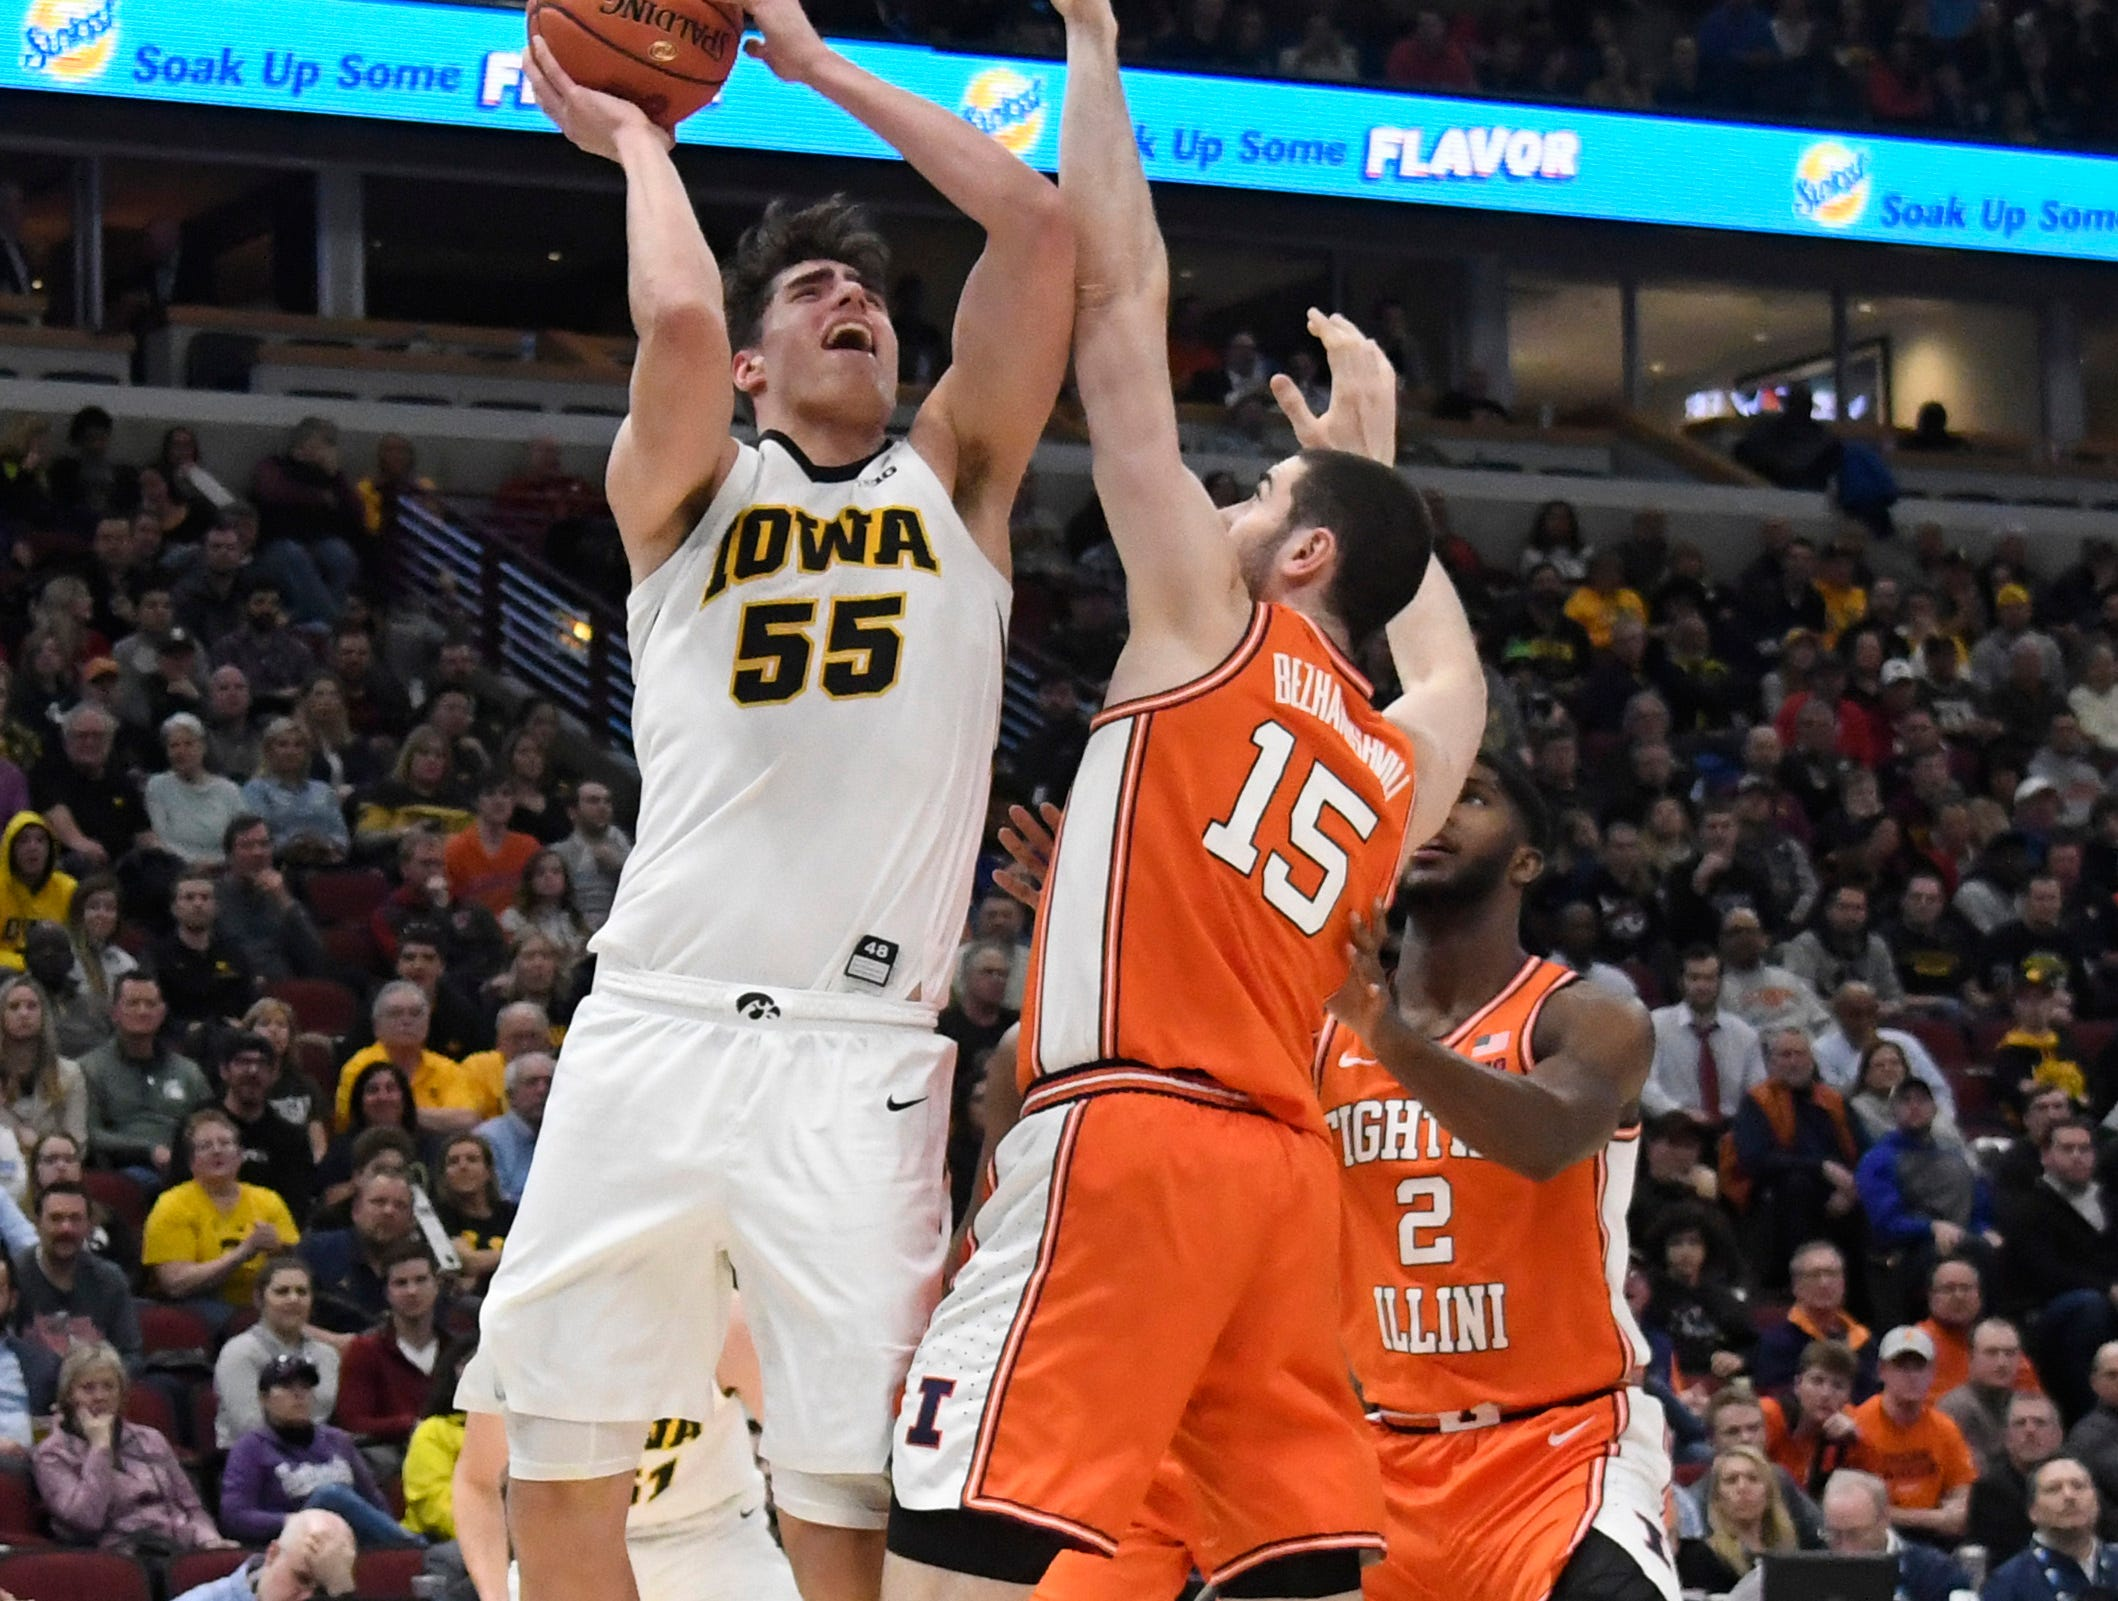 Mar 14, 2019; Chicago, IL, USA; Iowa Hawkeyes forward Ryan Kriener (15) shoots over Illinois Fighting Illini forward Giorgi Bezhanishvili (15) during the first half in the Big Ten conference tournament at United Center. Mandatory Credit: David Banks-USA TODAY Sports